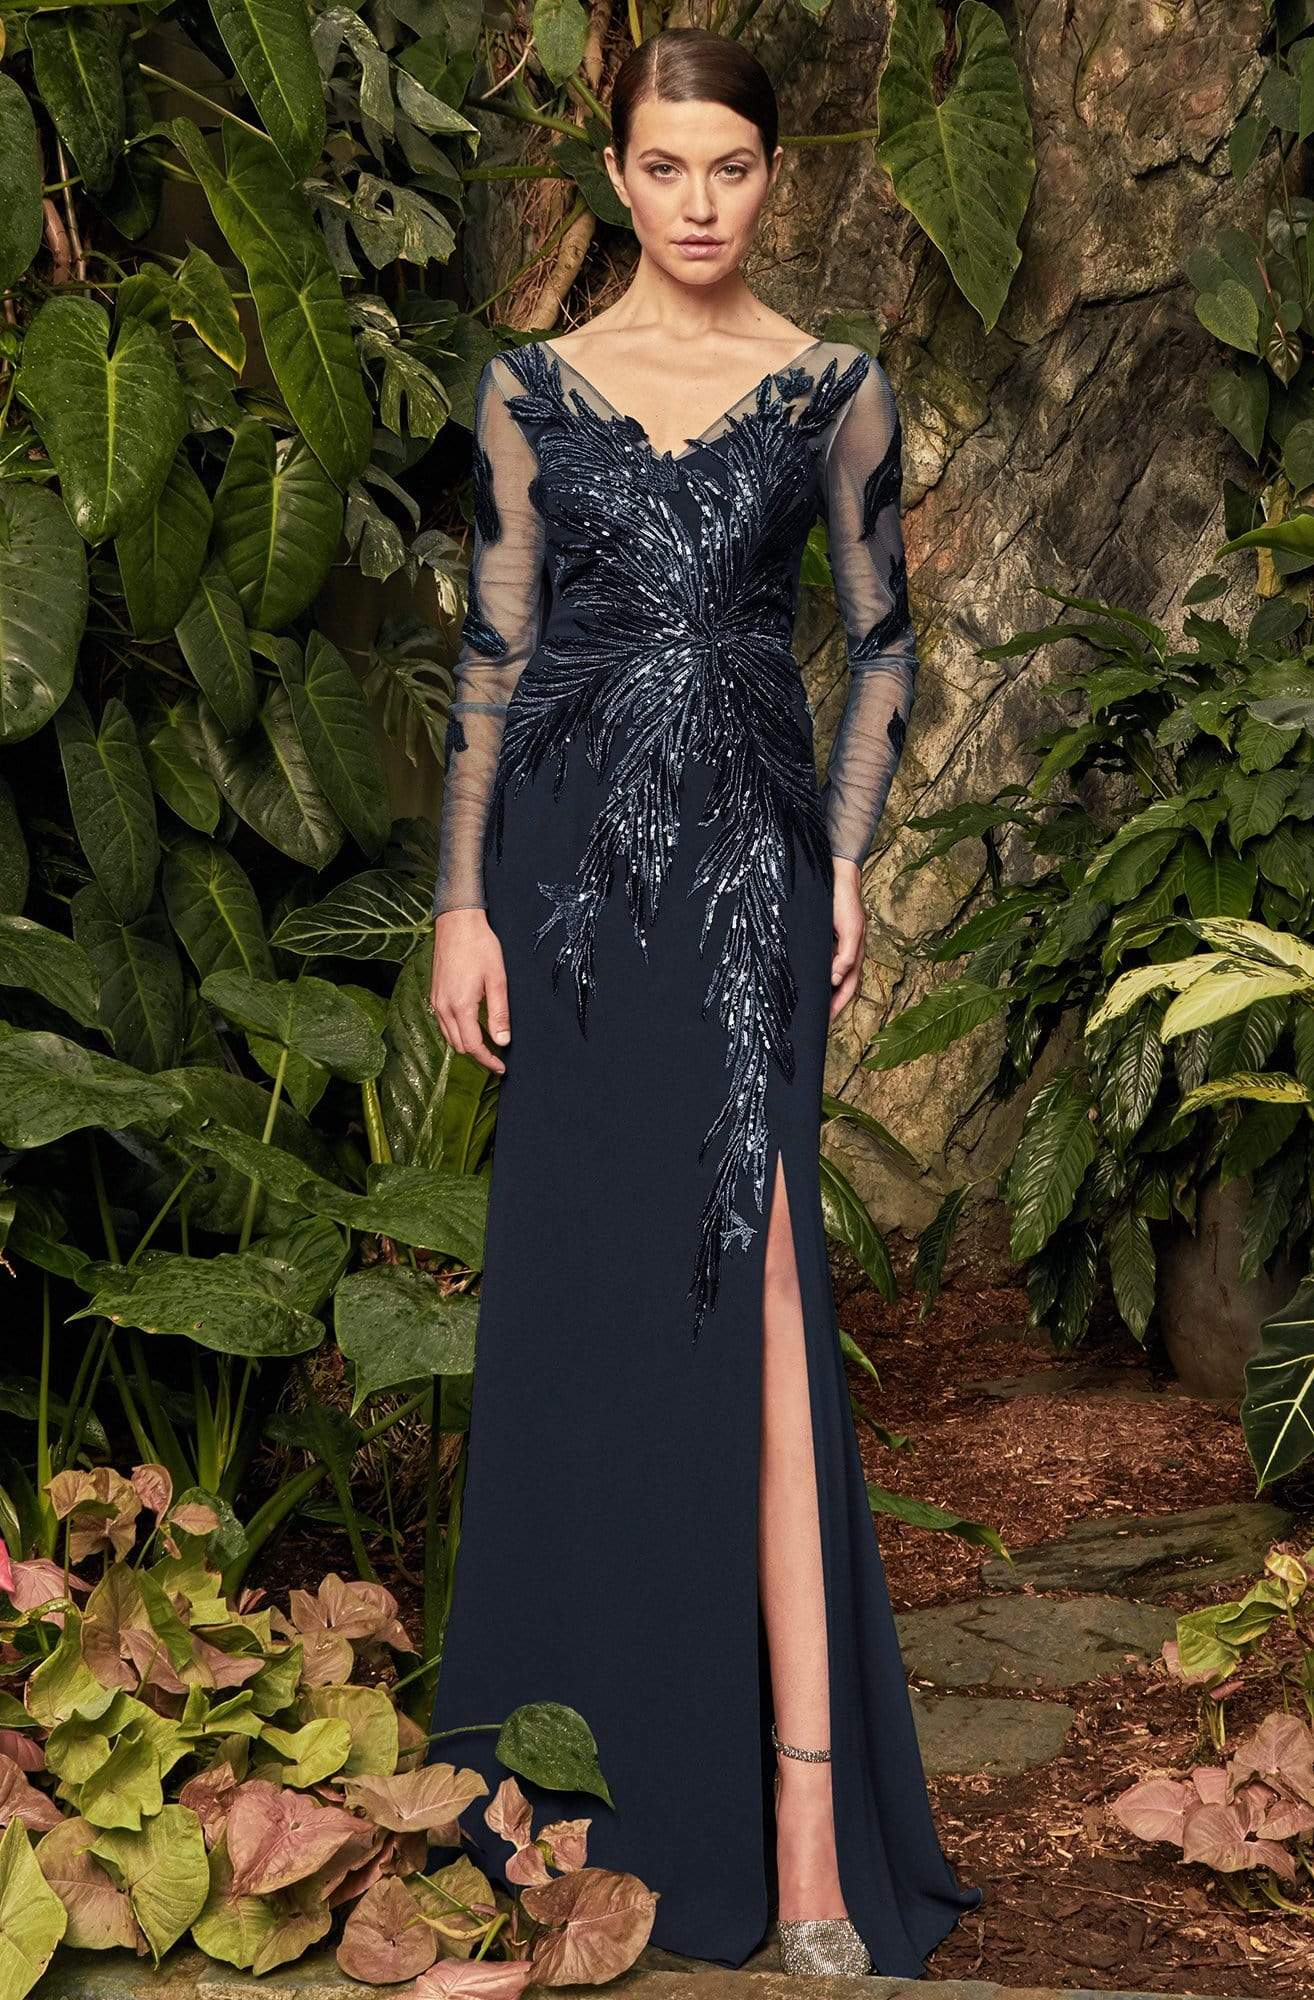 Alexander by Daymor - 960 Illusion Sleeves Sequin Lace Applique Sheath Gown Mother of the Bride Dresses 2 / Midnite